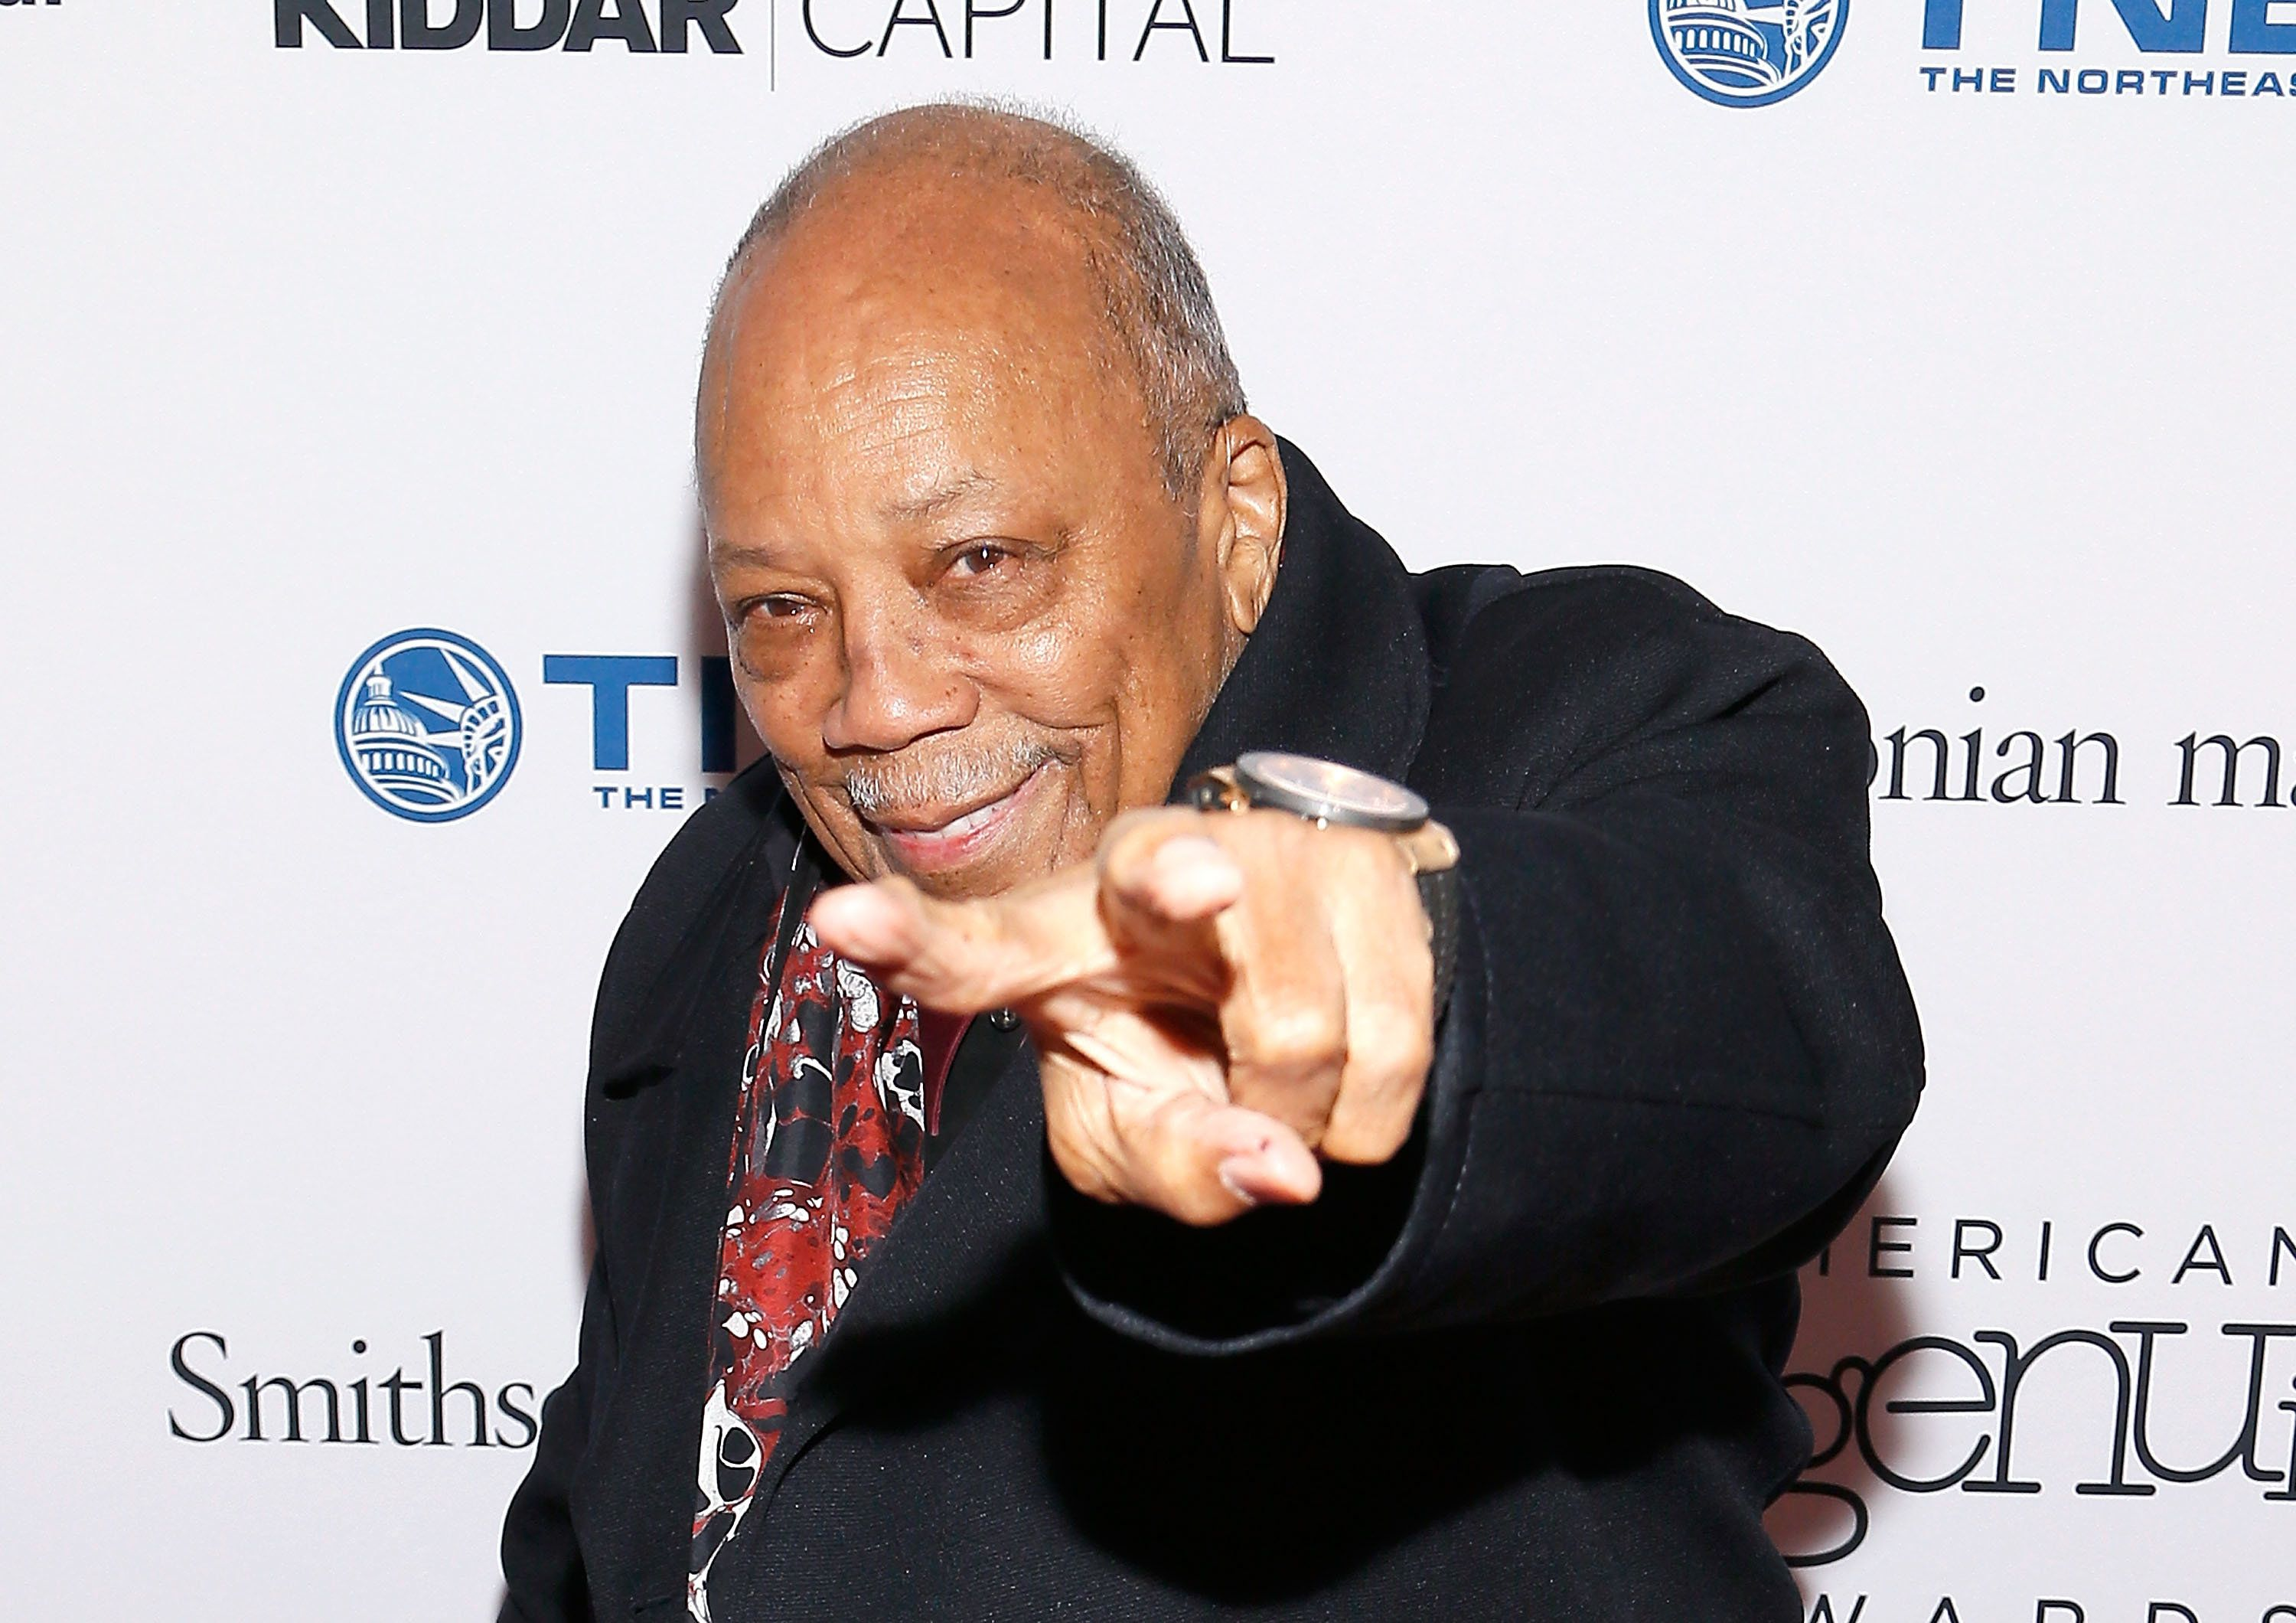 WASHINGTON, DC - NOVEMBER 29:  Quincy Jones attends the Smithsonian Magazine's 2017 American Ingenuity Awards at the National Portrait Gallery on November 29, 2017 in Washington, DC.  (Photo by Paul Morigi/Getty Images)